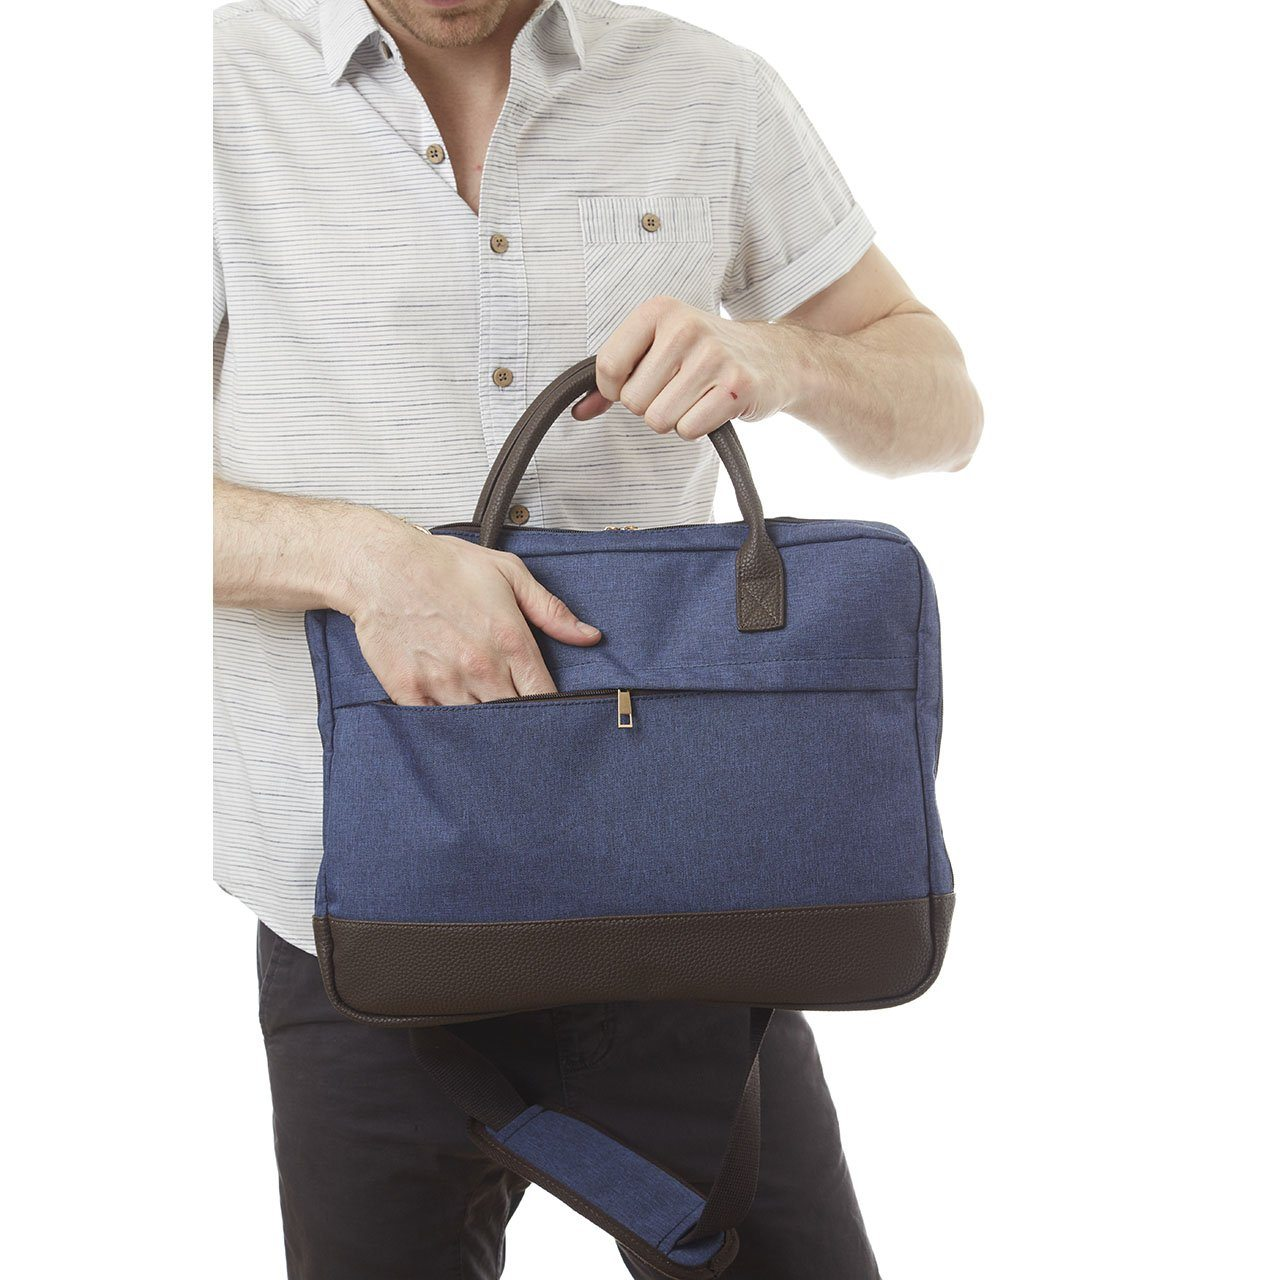 Laptop Bag - Gilbert Two Tone Laptop Bag